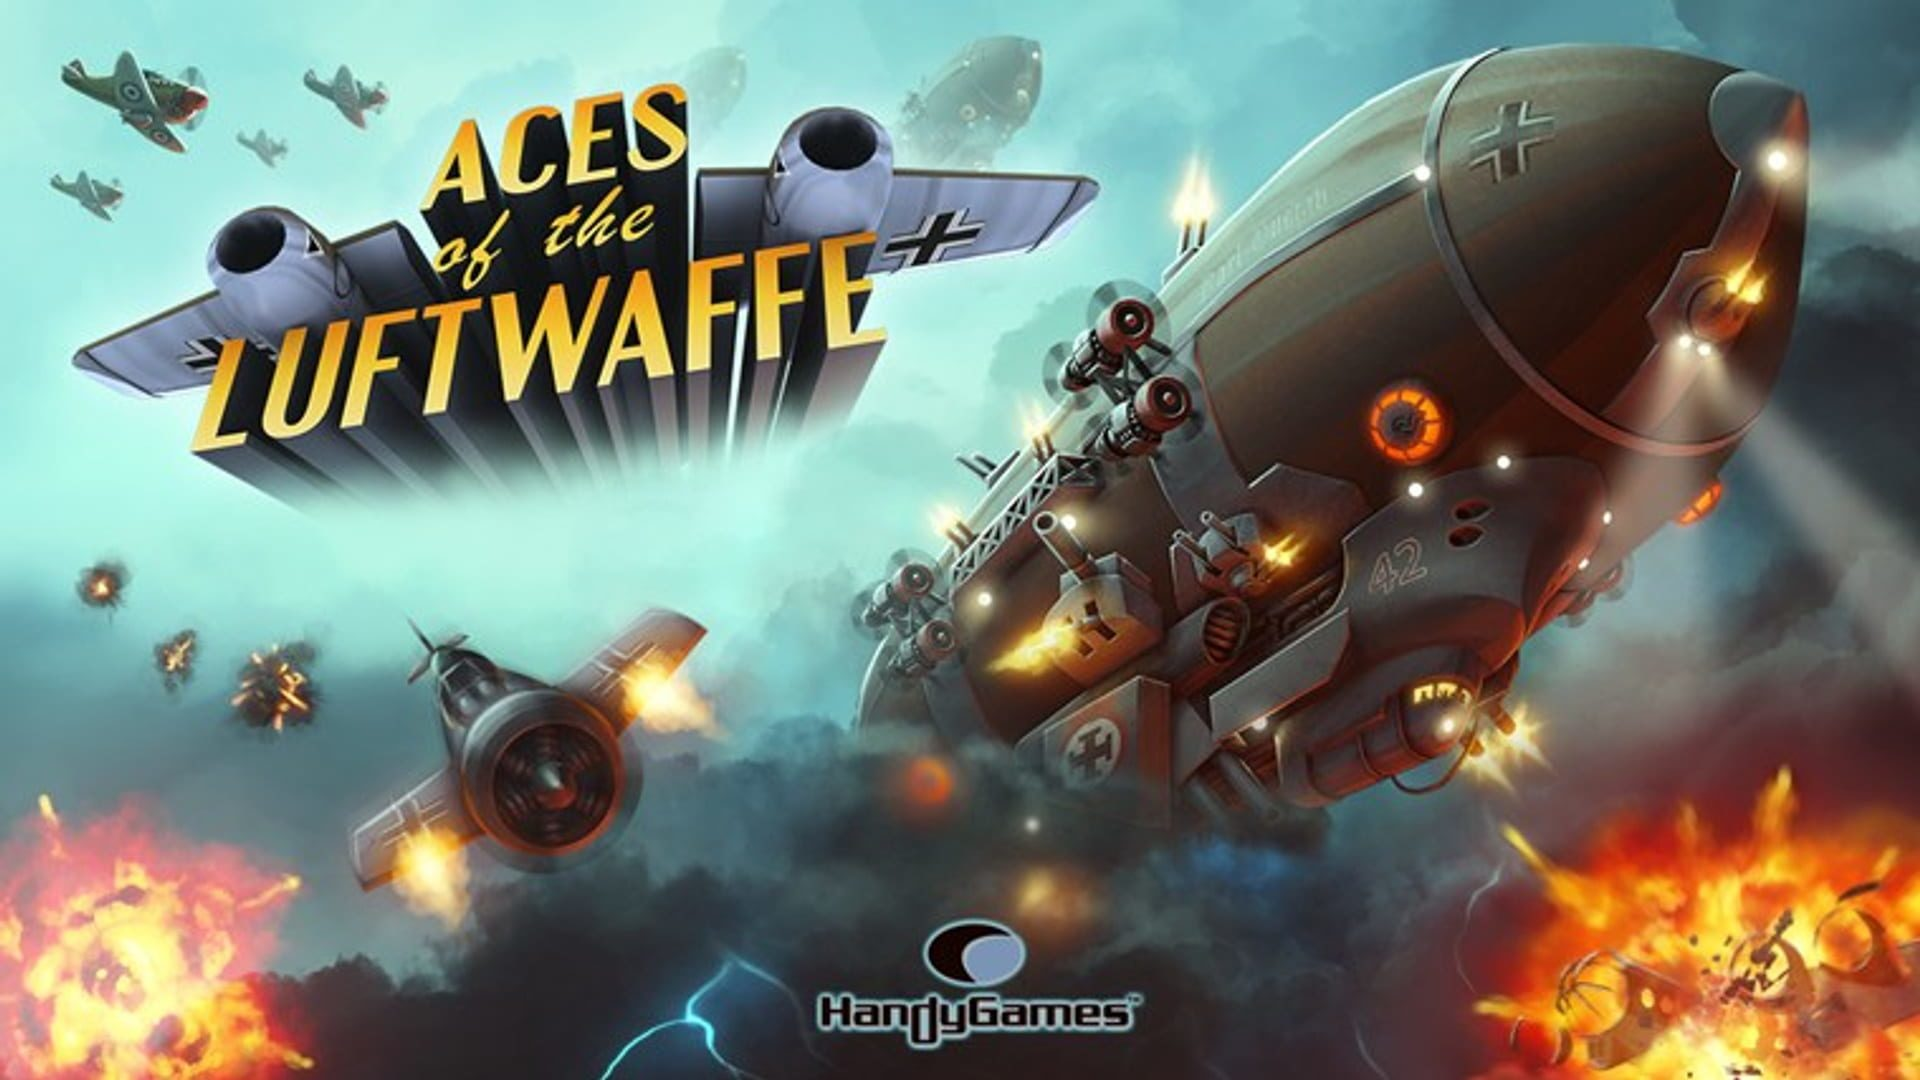 buy Aces of the Luftwaffe cd key for pc platform